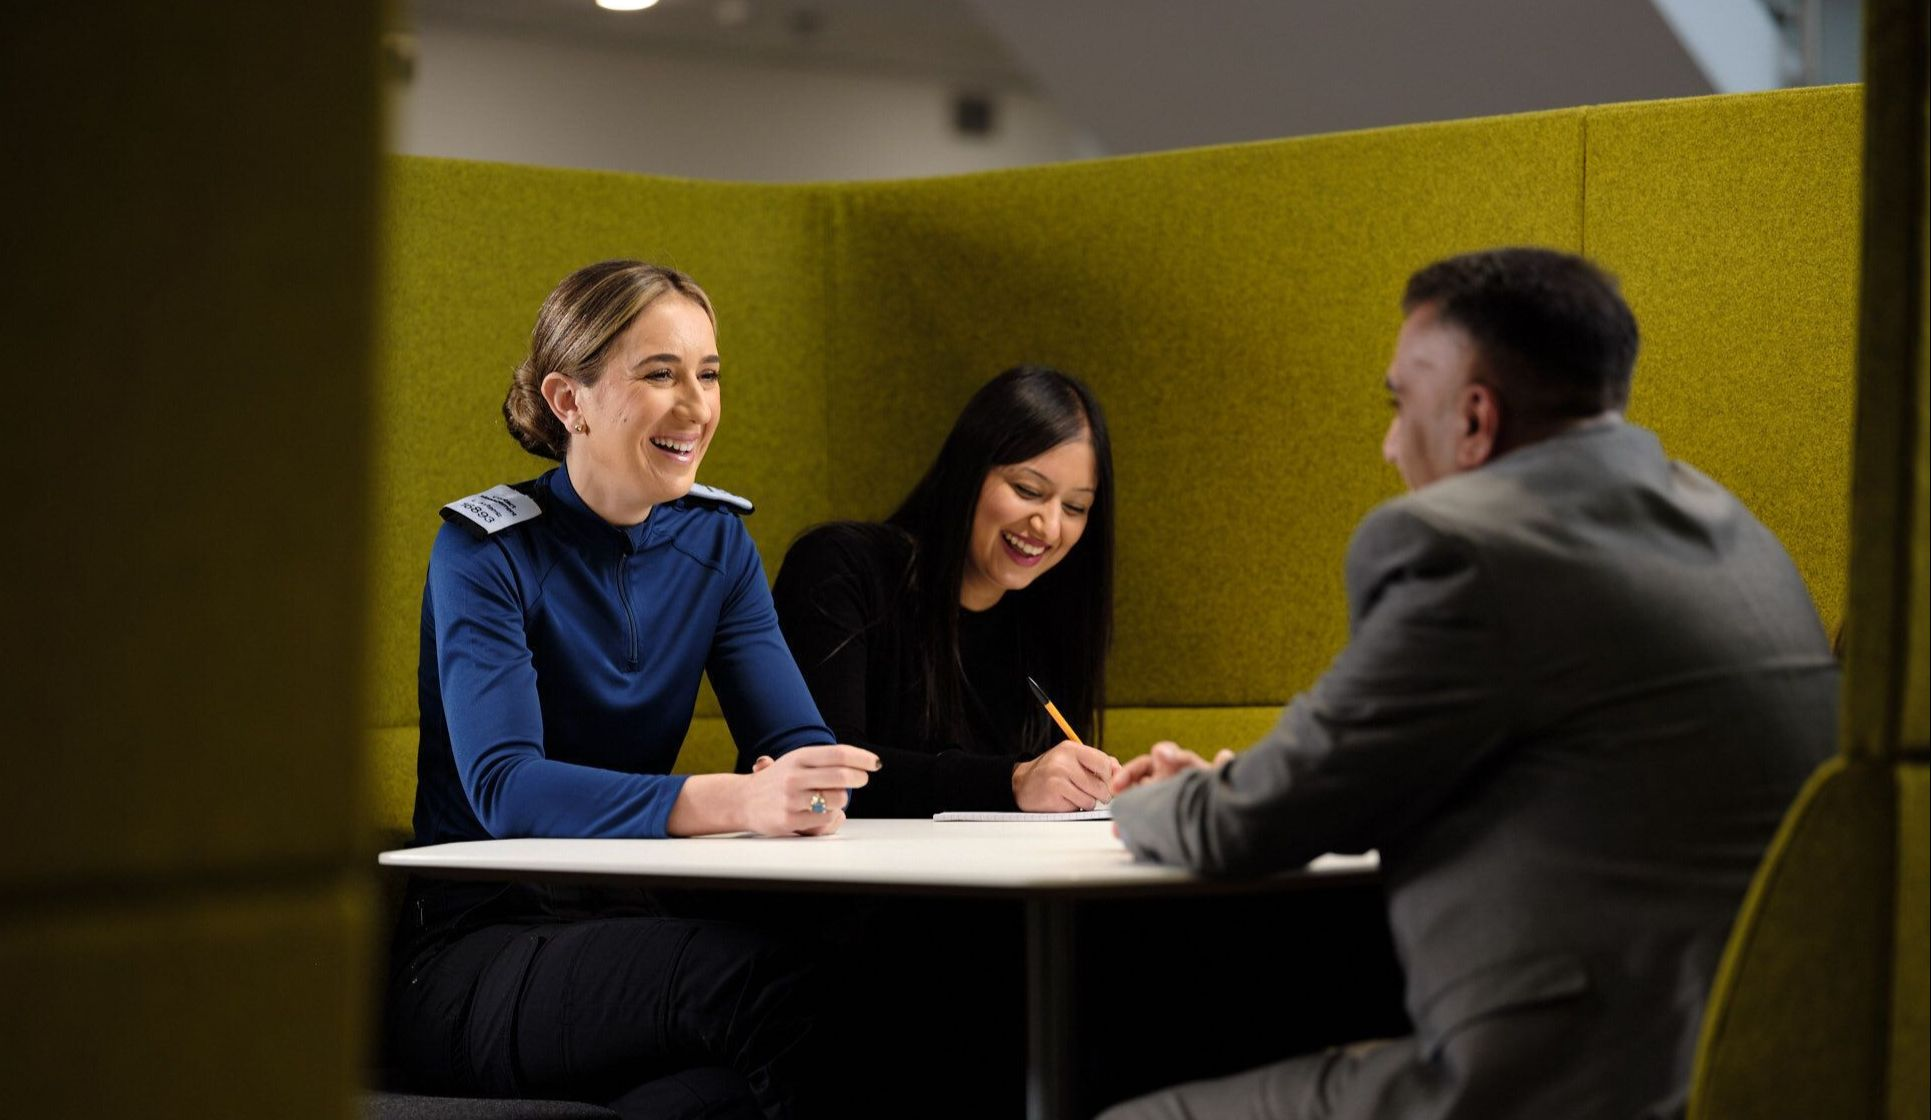 A police officer laughs in a meeting with two staff members